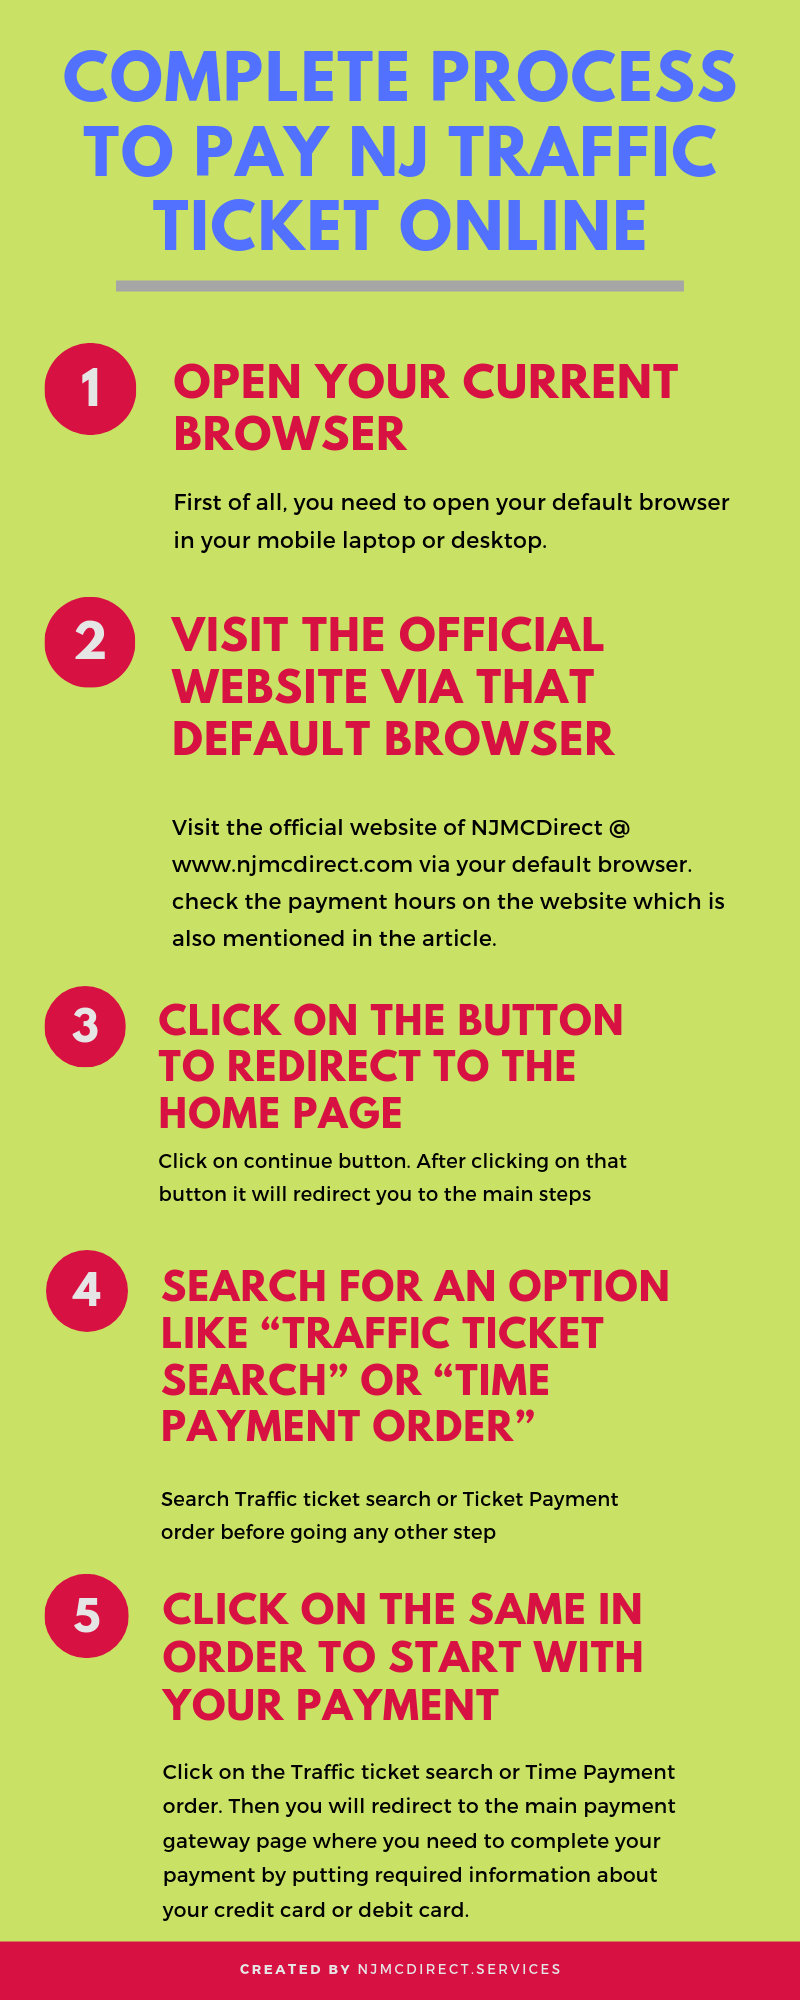 Complete process to pay NJ traffic ticket online